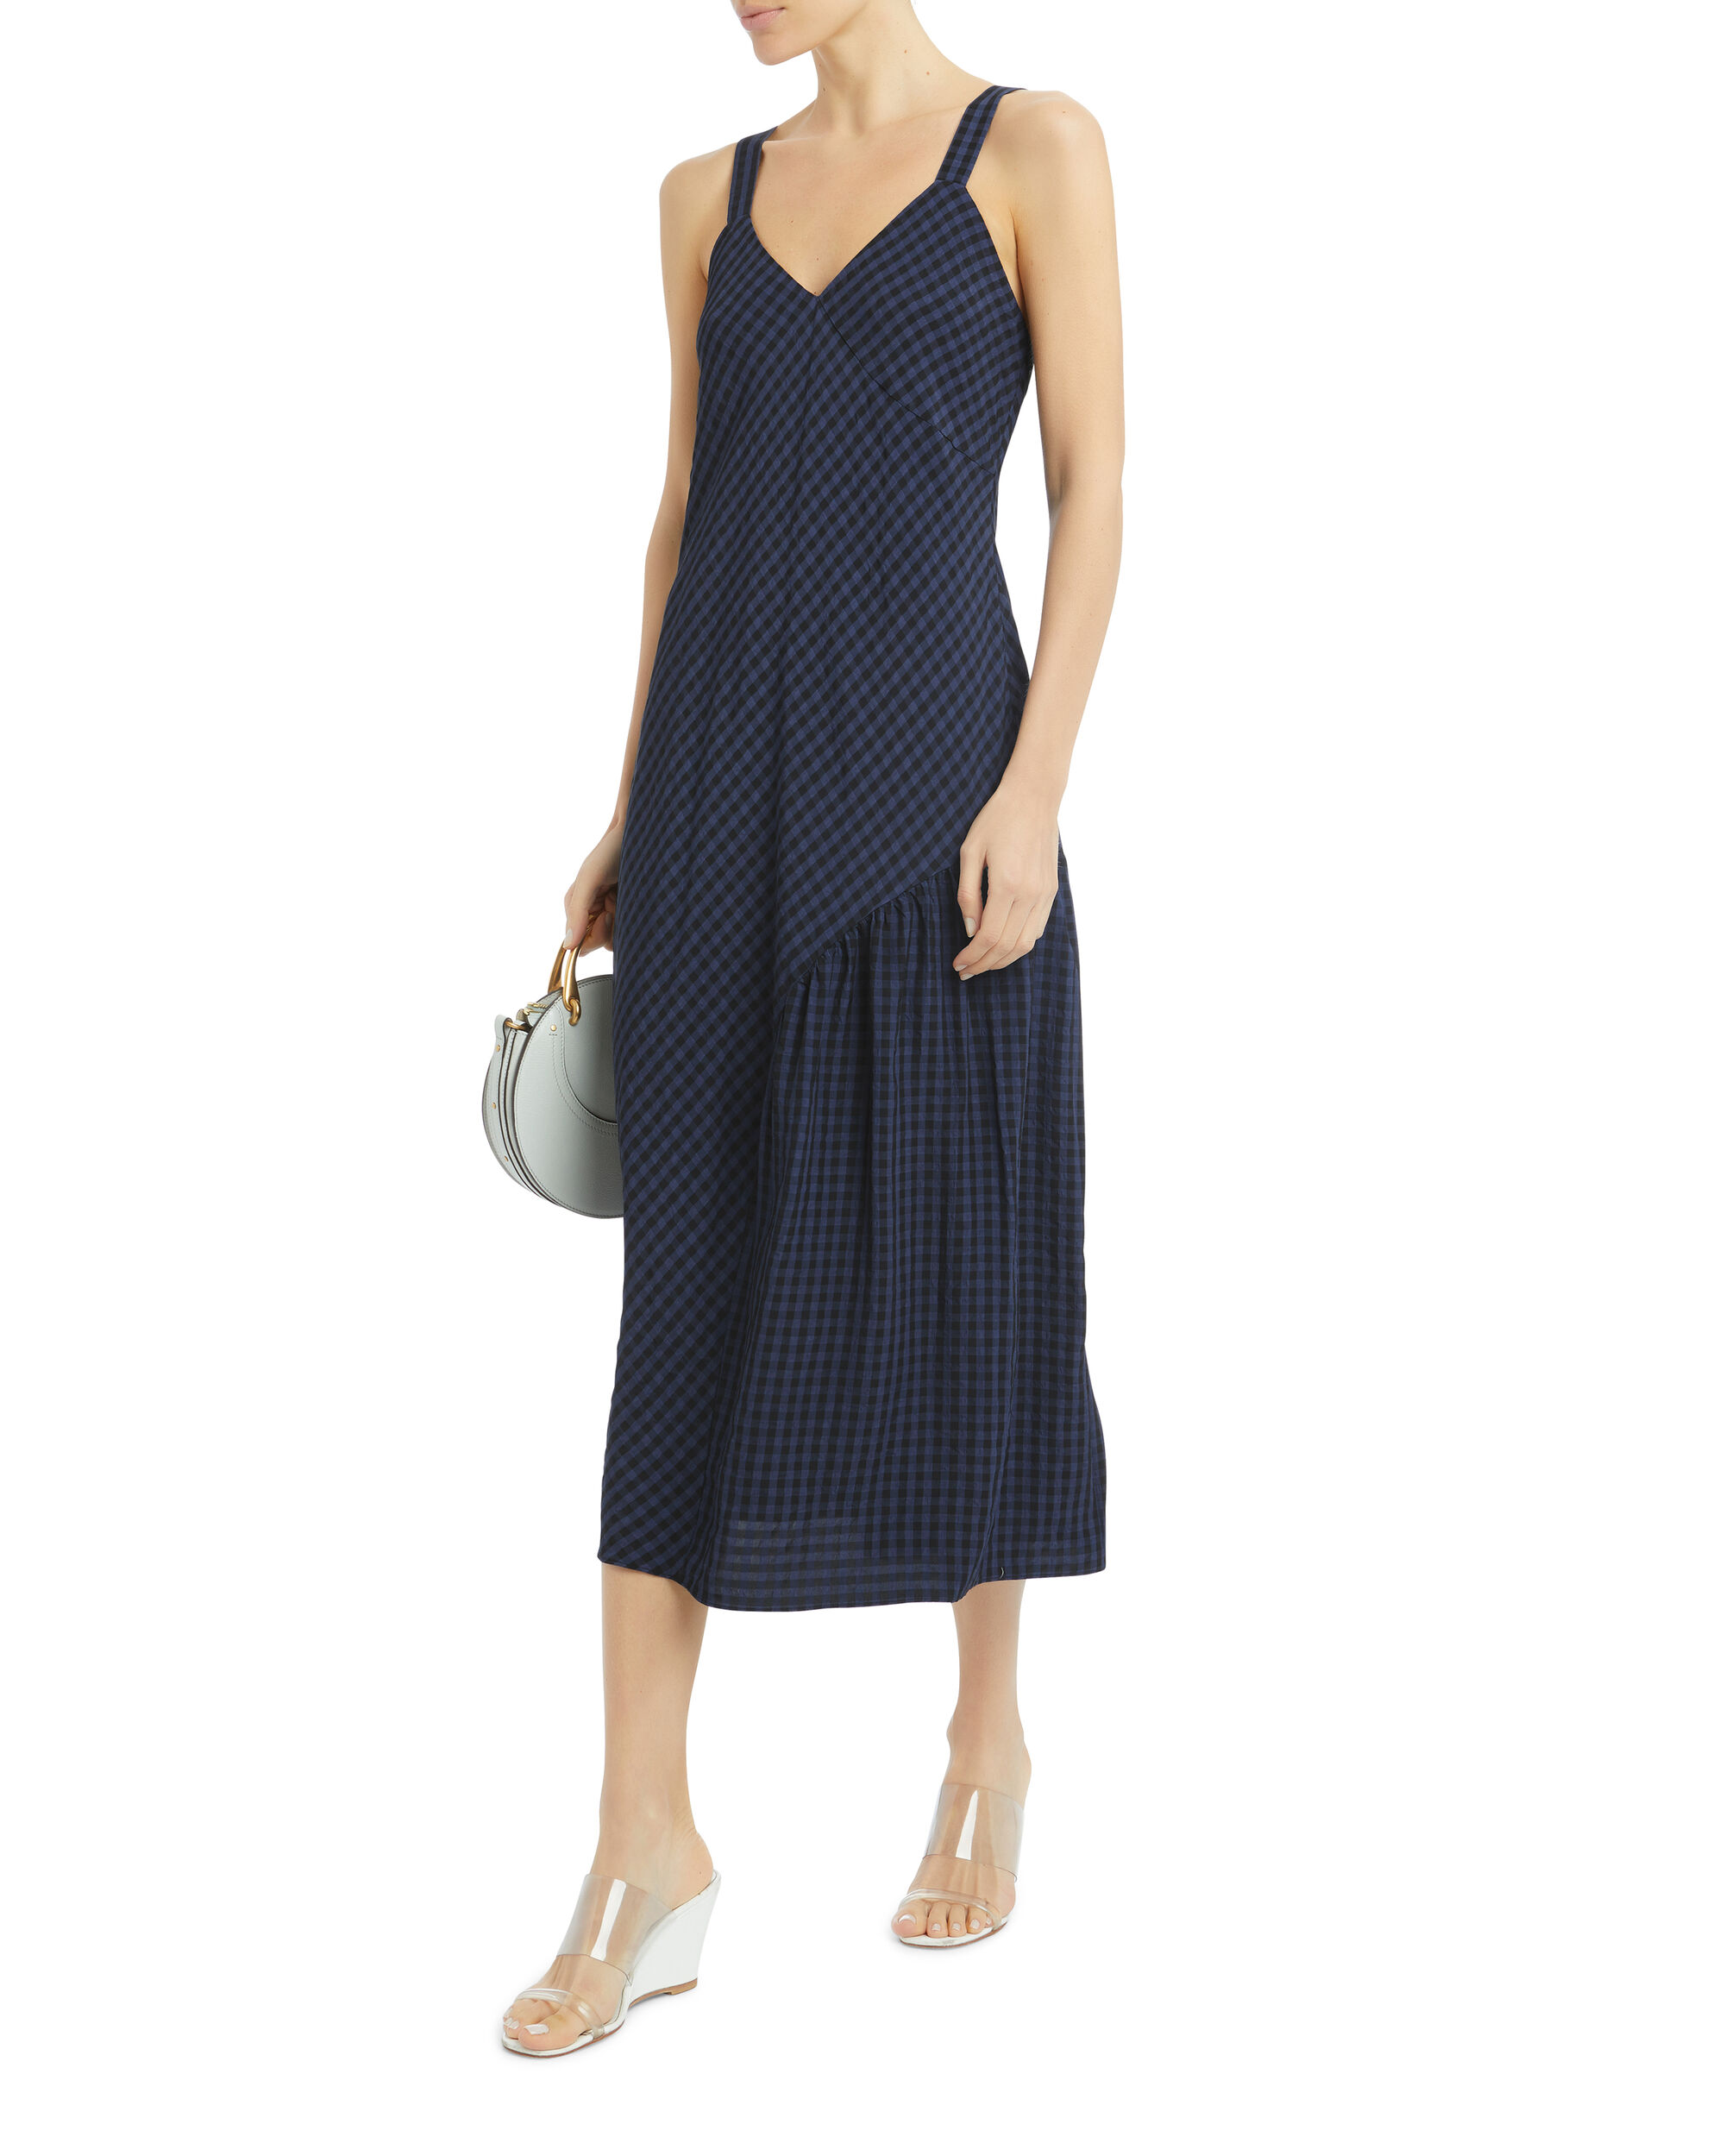 Gingham Slip Dress, NAVY, hi-res